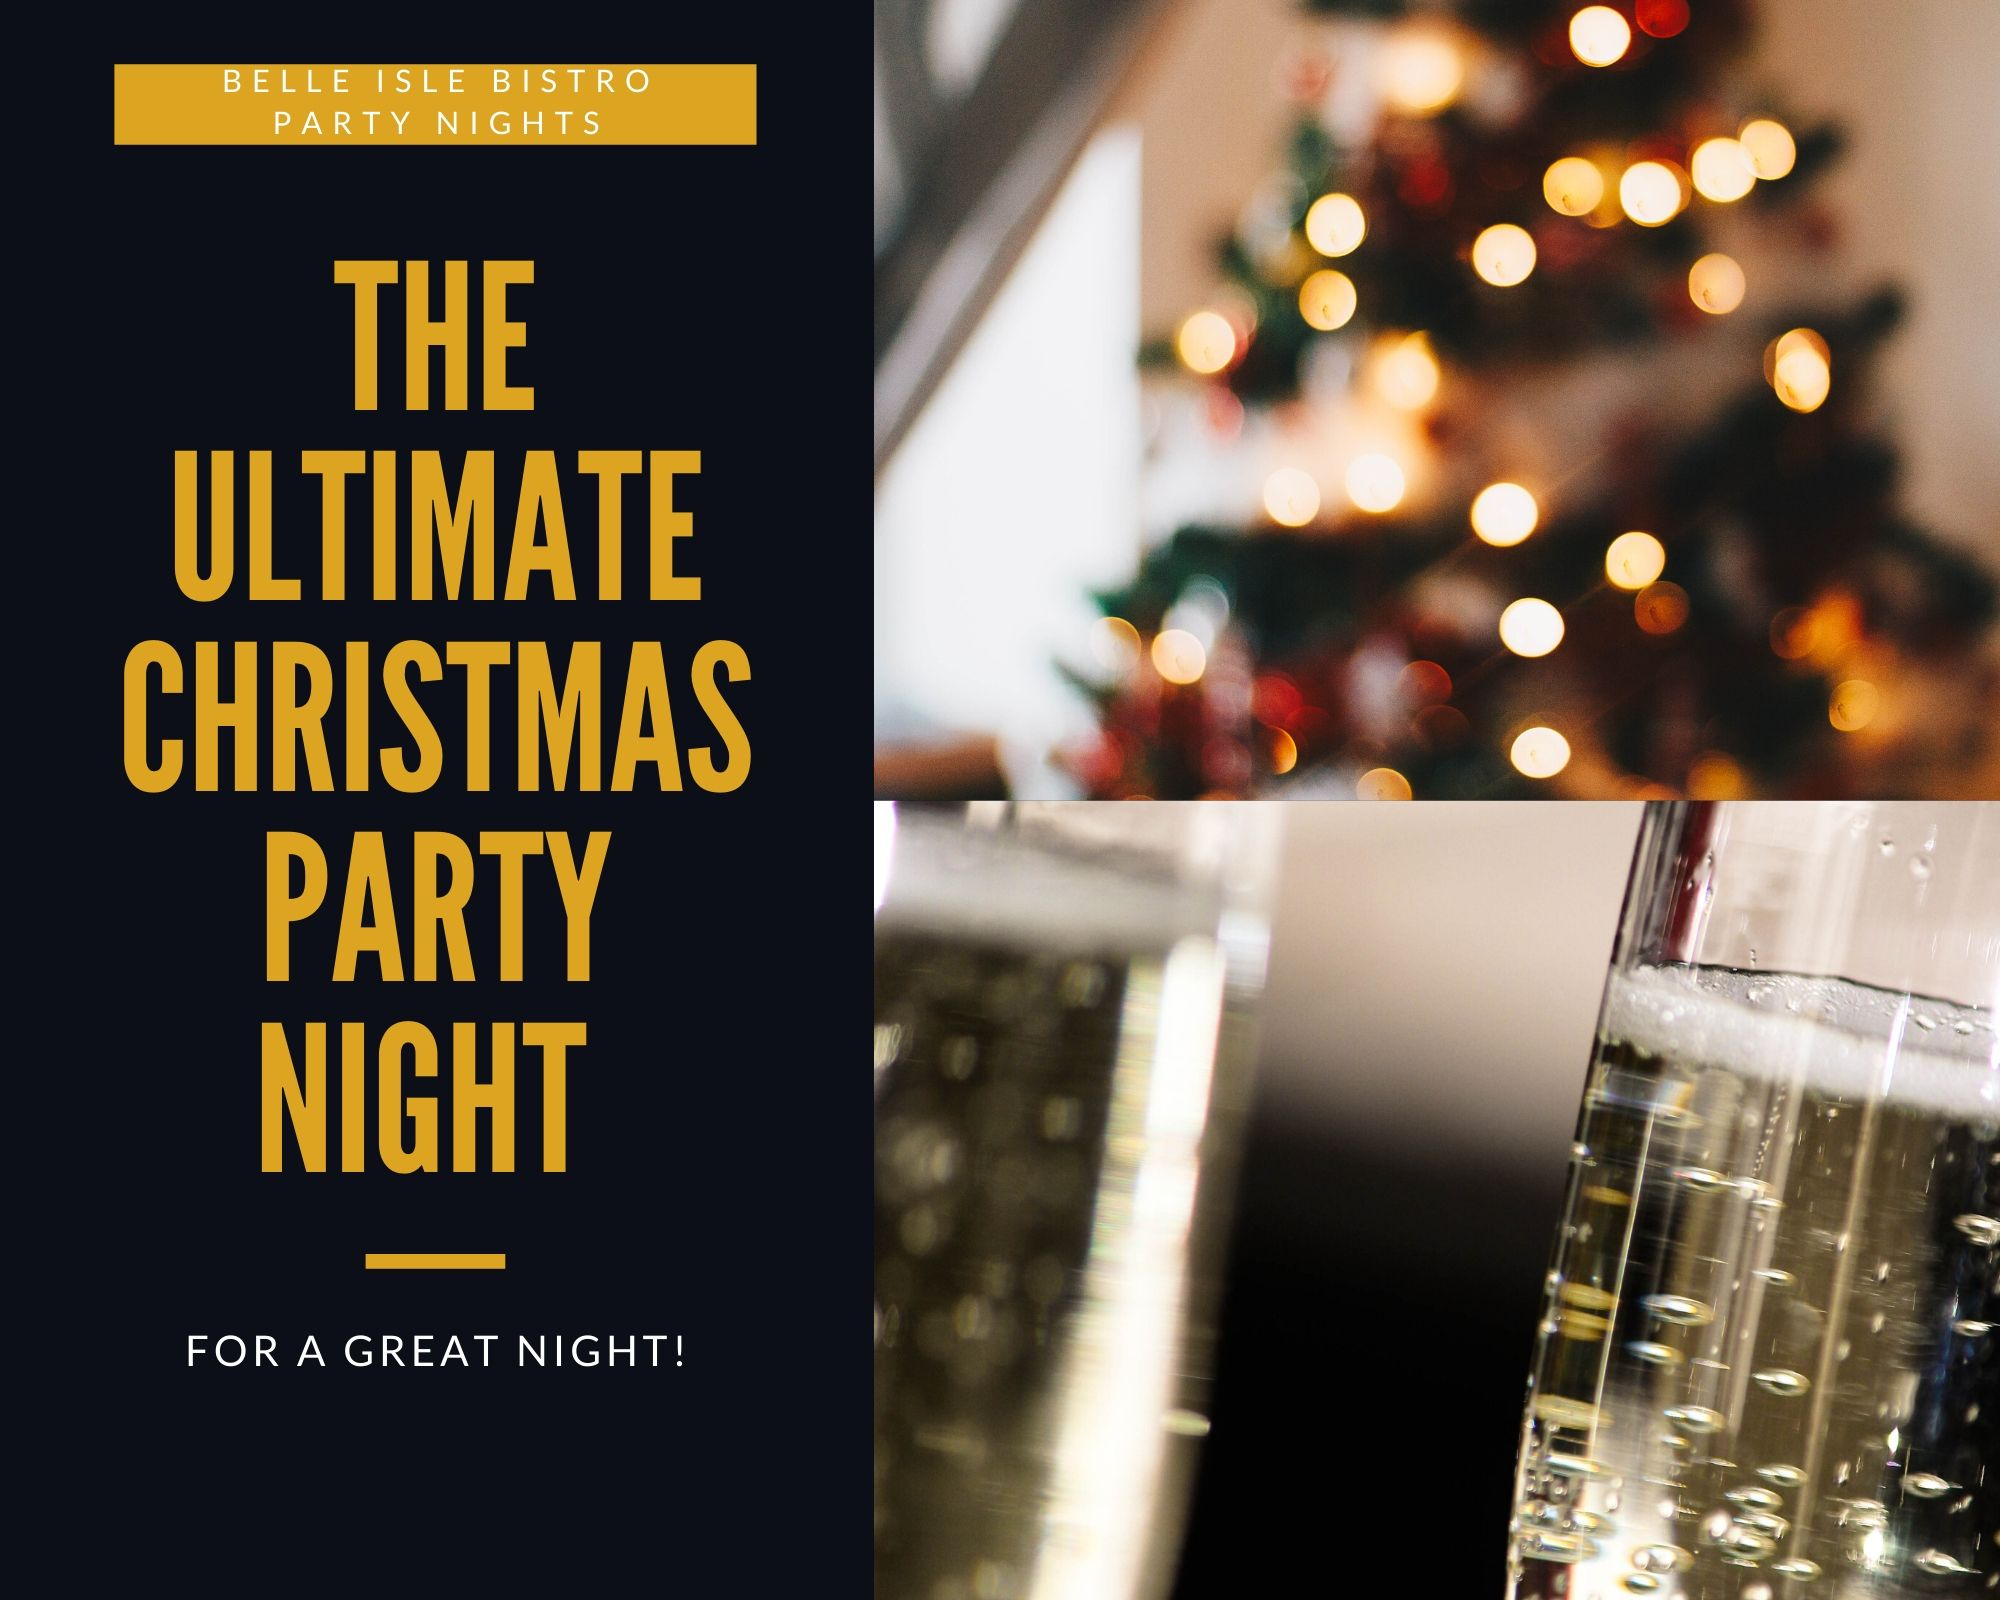 Christmas Party Nights At Belle Isle Bistro